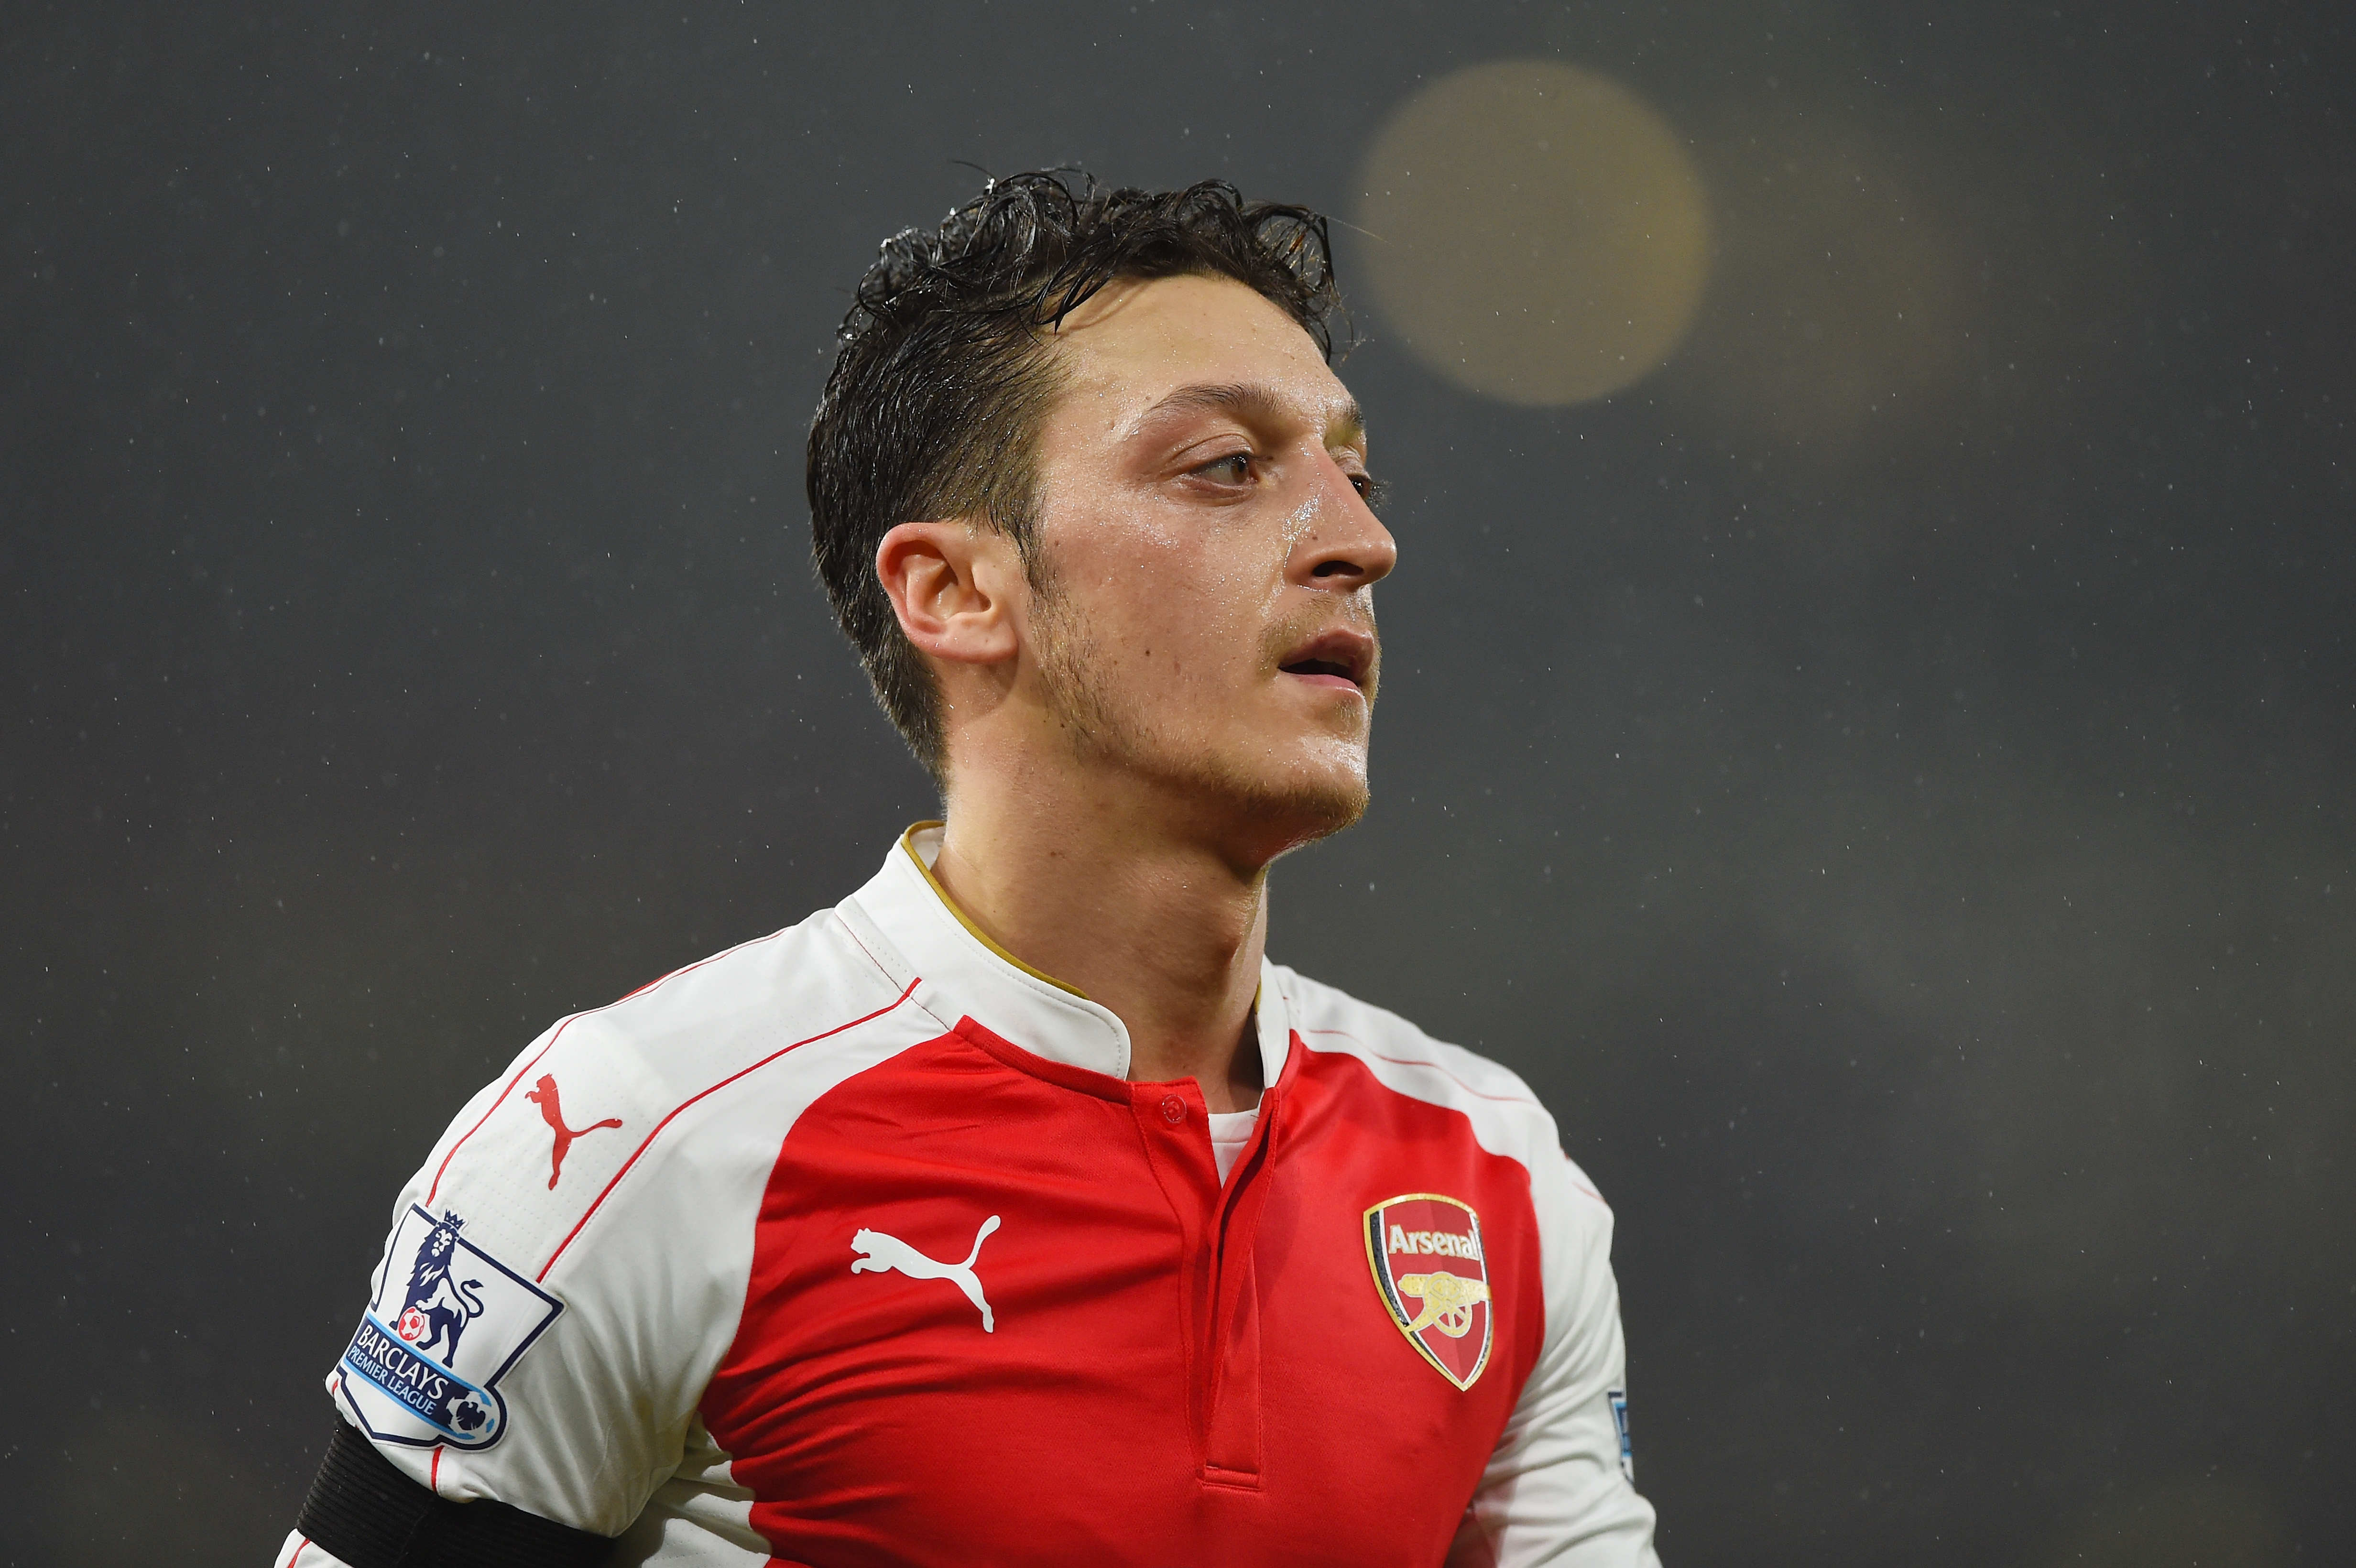 LONDON, ENGLAND - JANUARY 02: Mesut Ozil of Arsenal in action during the Barclays Premier League match between Arsenal and Newcastle United at Emirates Stadium on January 2, 2016 in London, England. (Photo by Shaun Botterill/Getty Images)